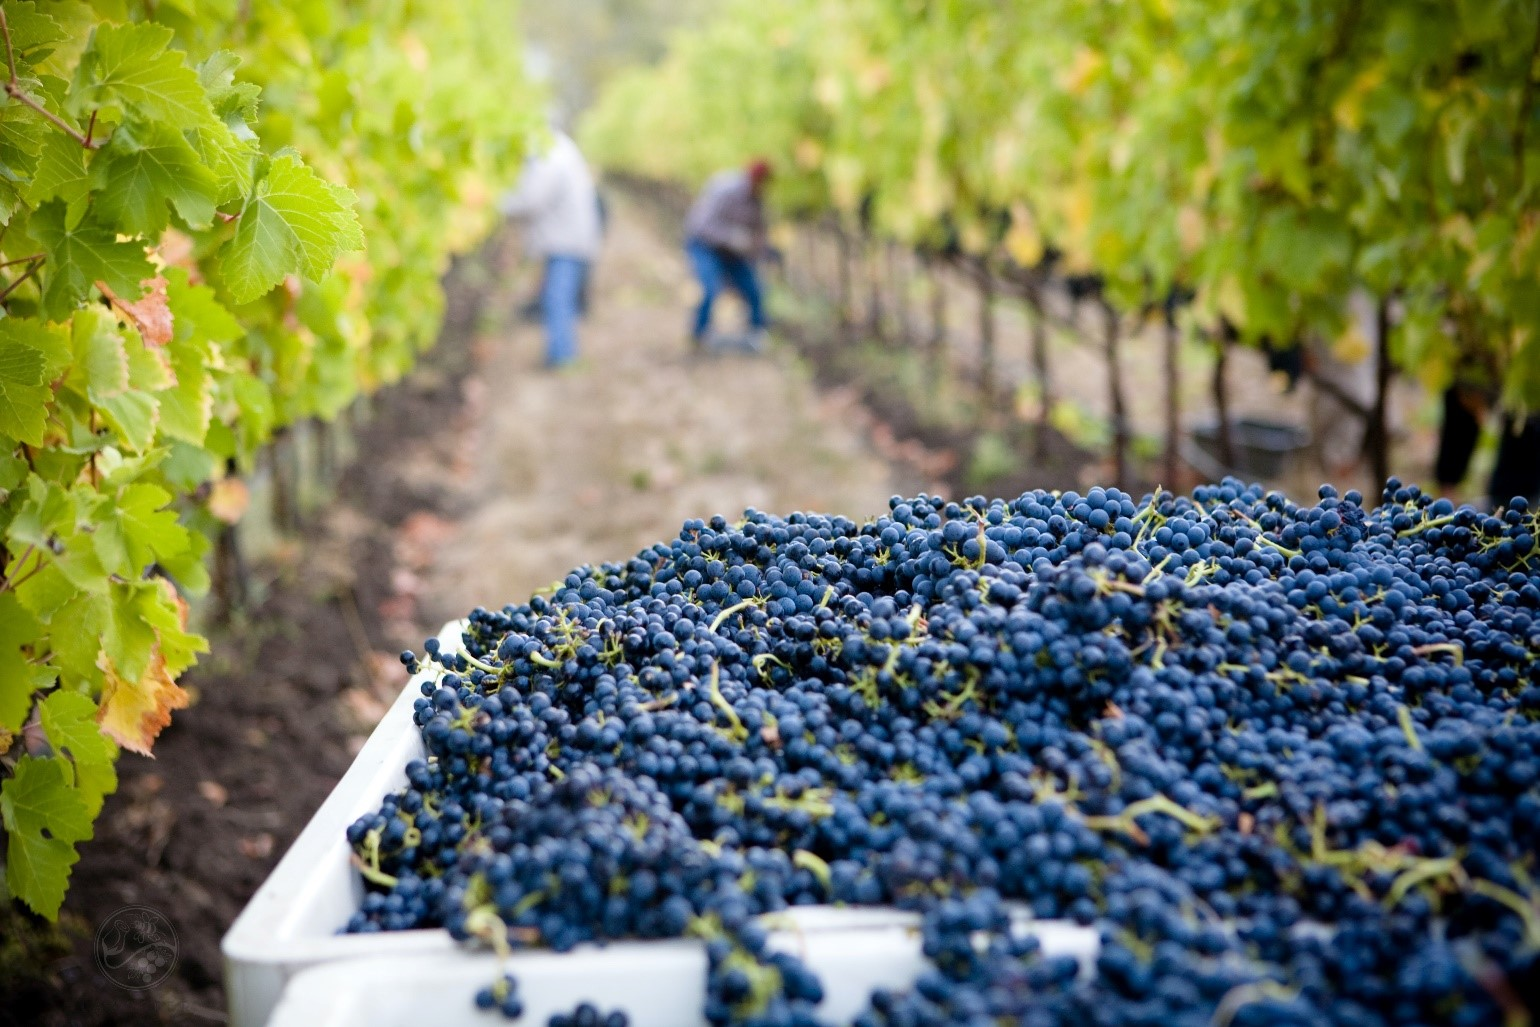 A vineyard during harvest with a crate full of grapes in the foreground.